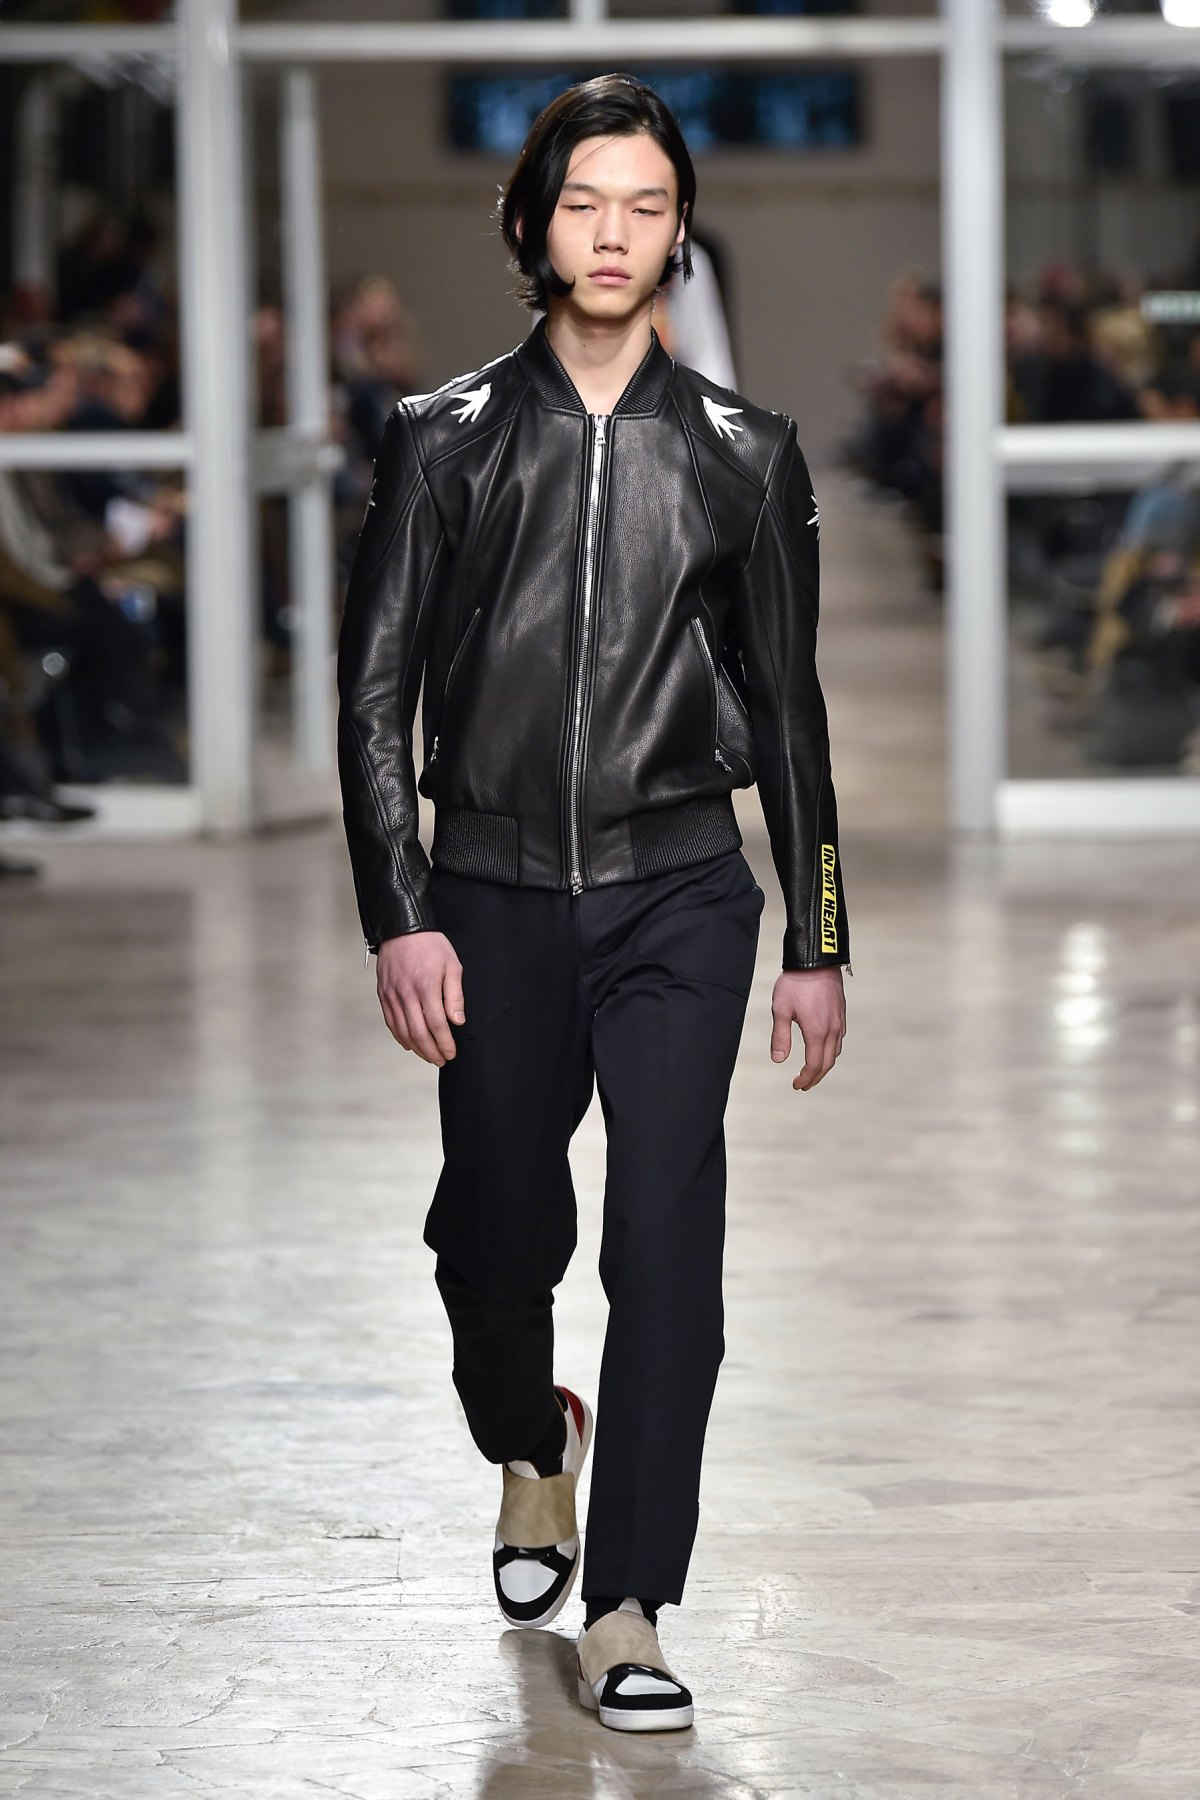 Tim Coppens PU m RF17 1123